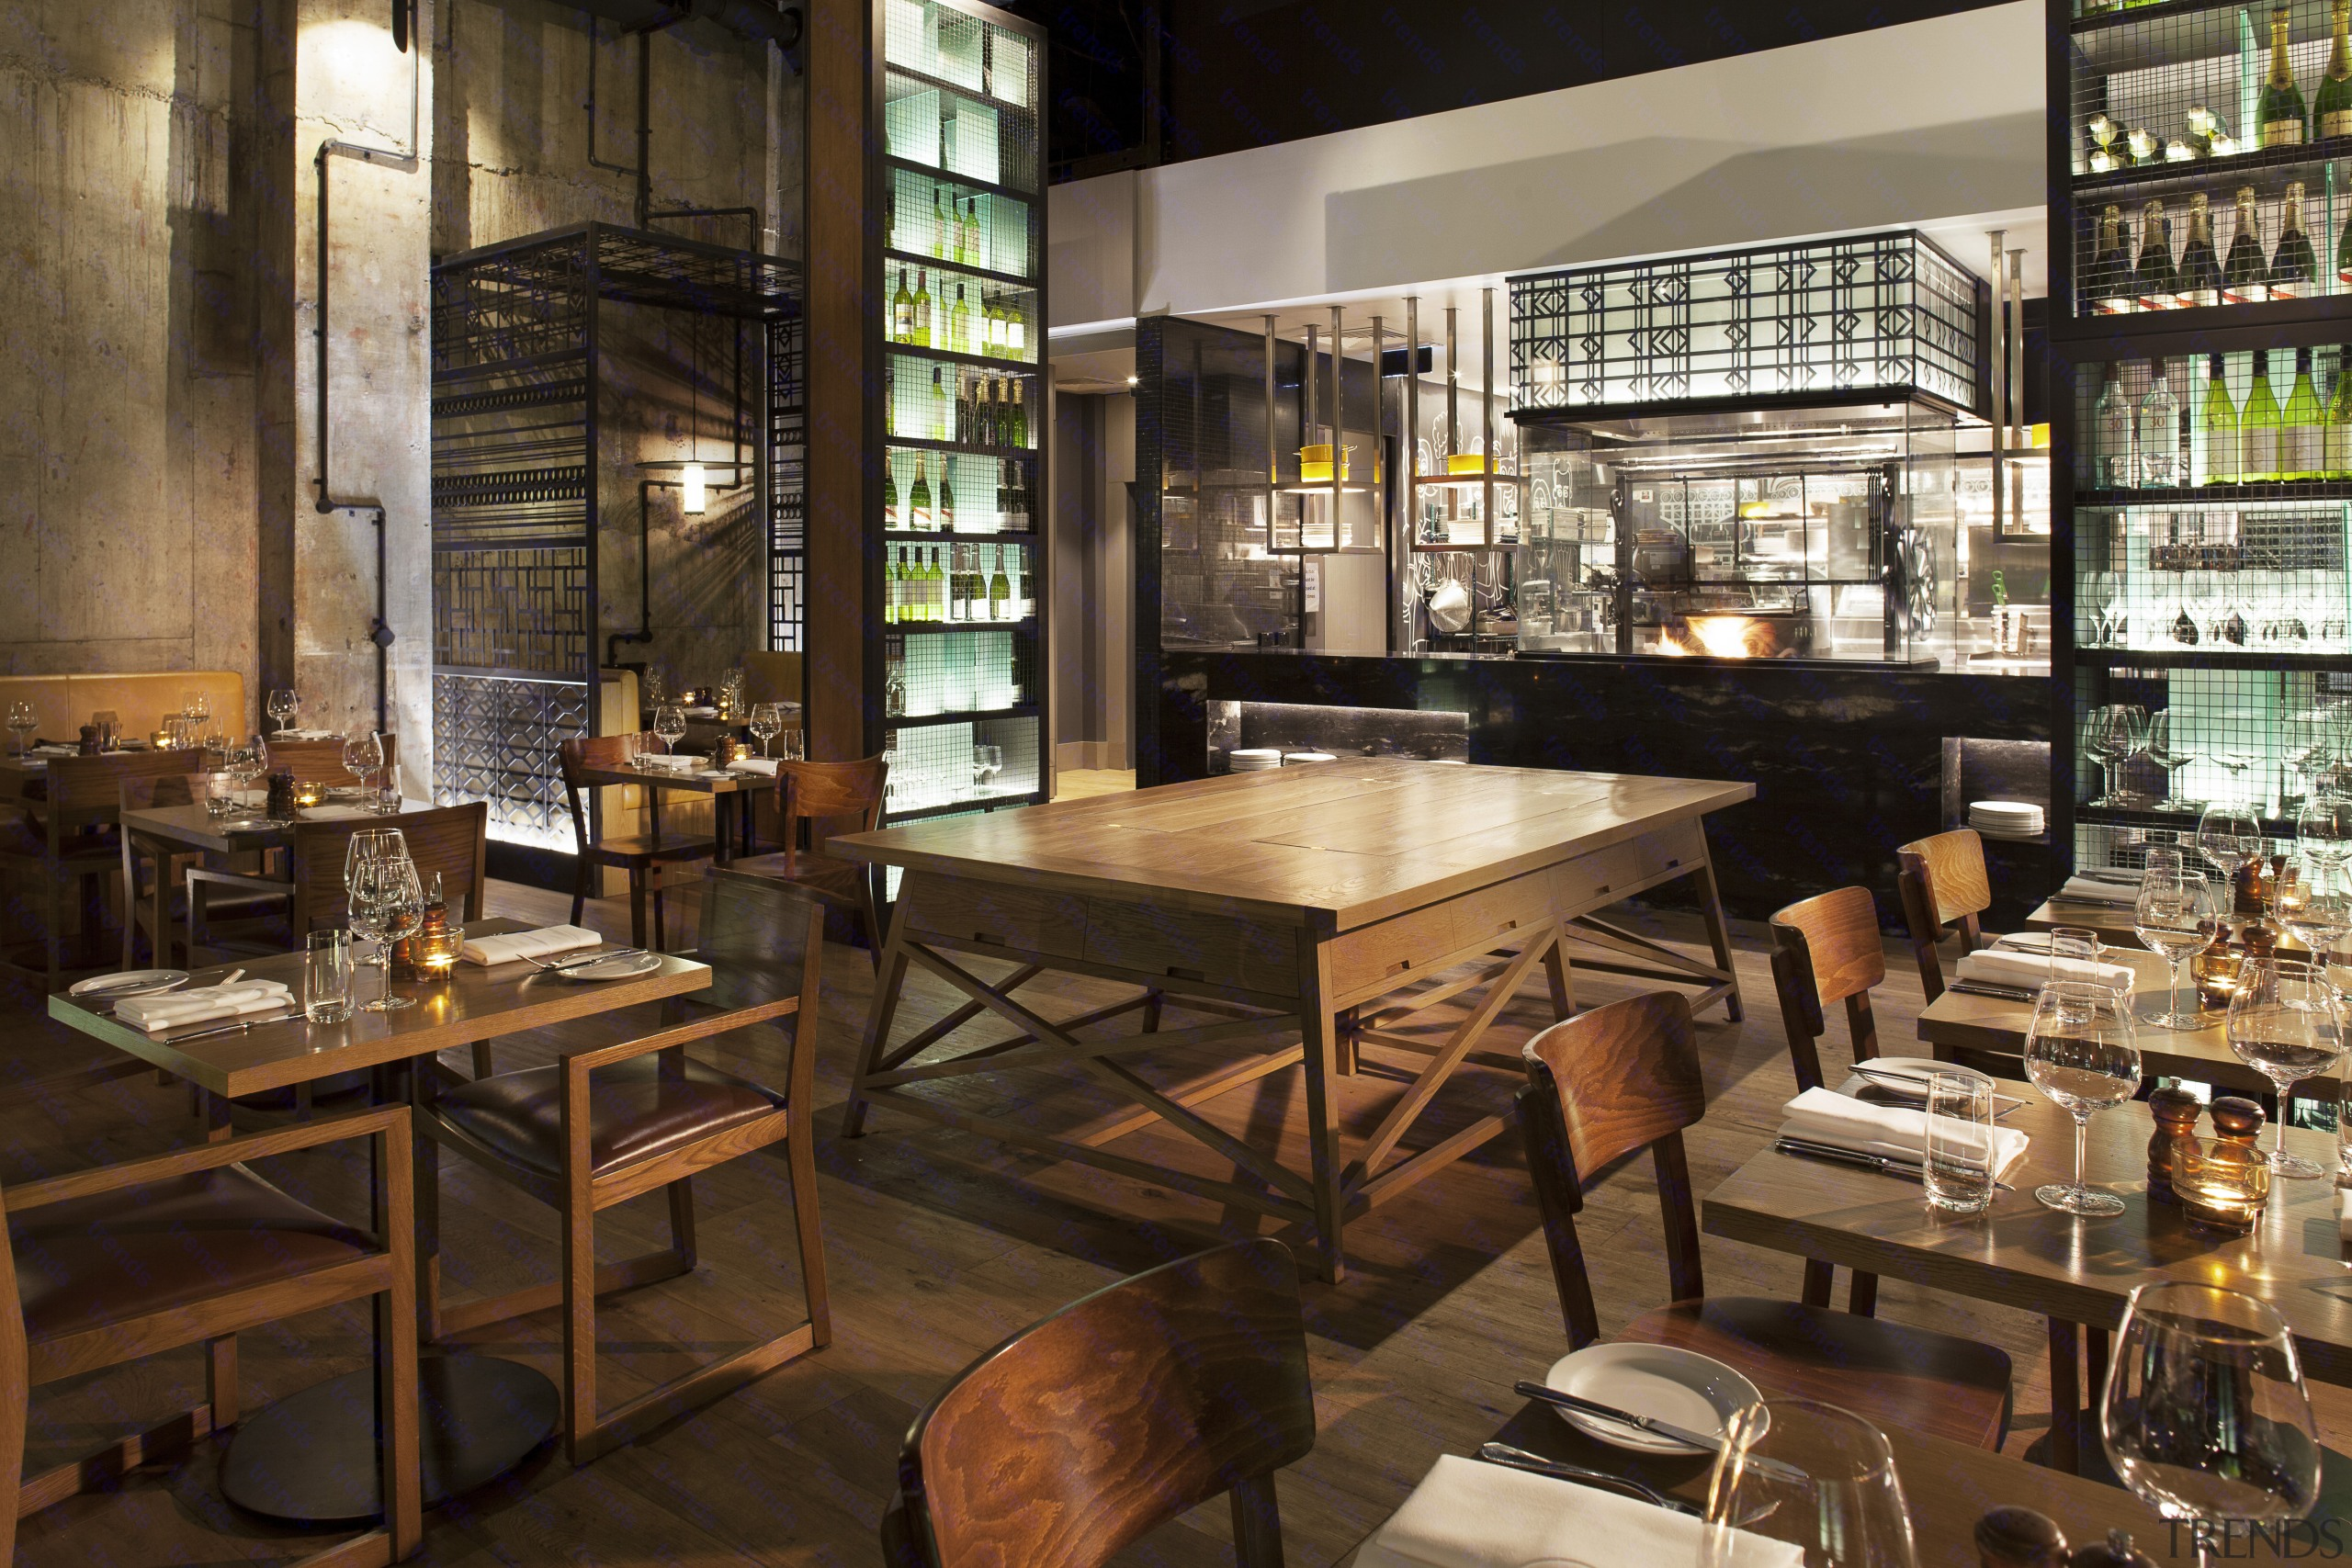 The open kitchen in the new DoubleTree by café, interior design, restaurant, brown